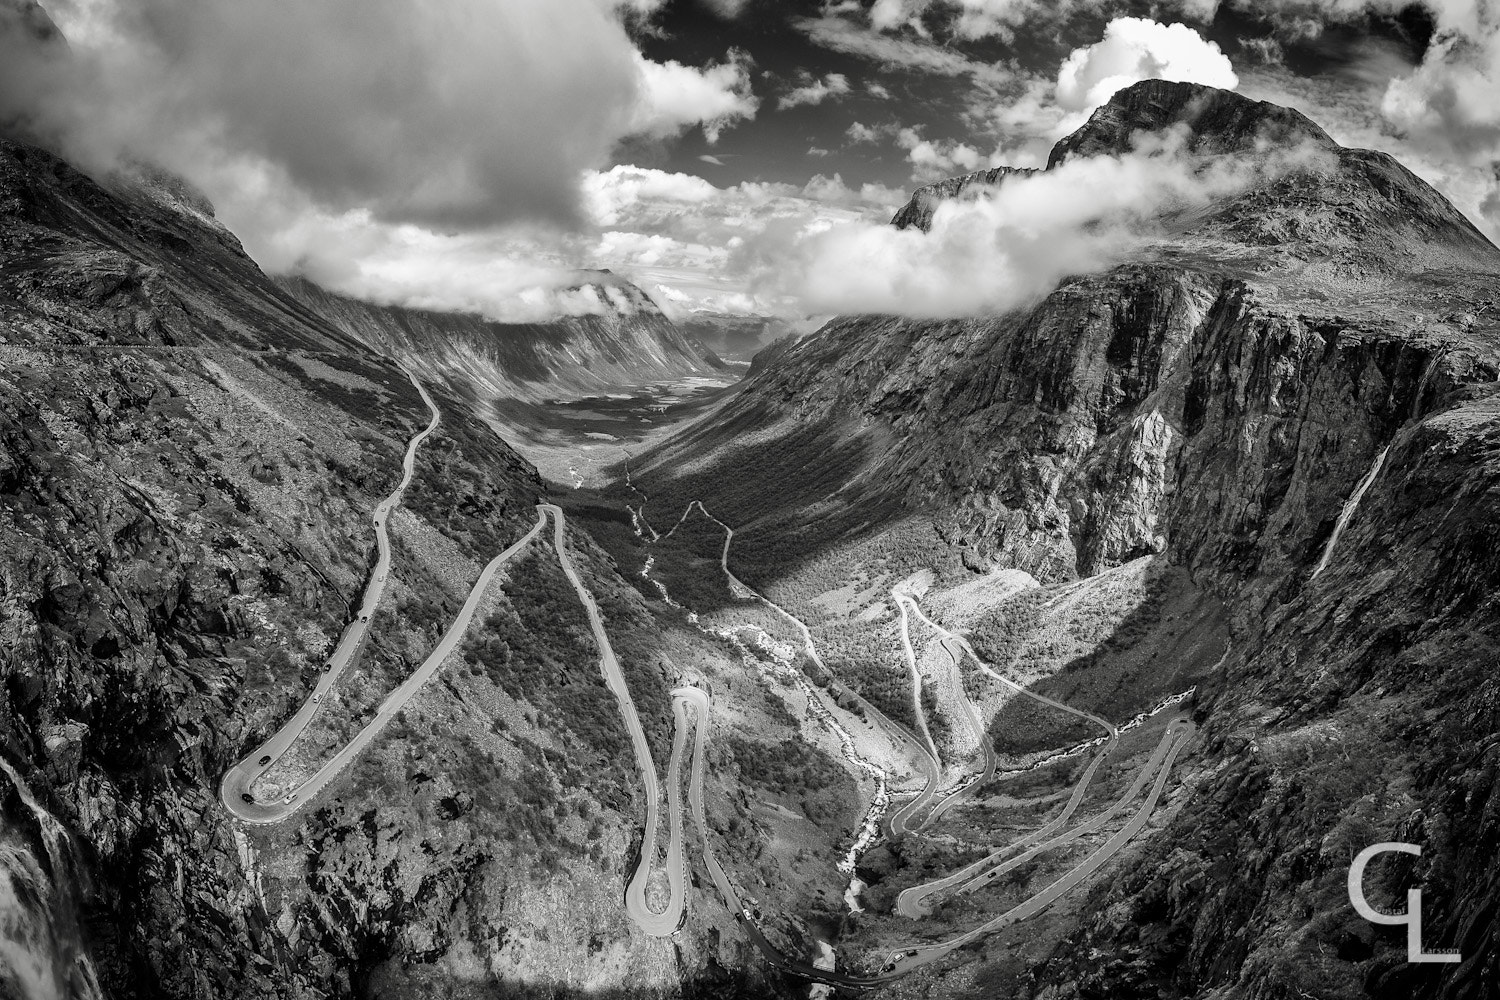 Photograph Winding Road B/W by Gustaf Larsson on 500px